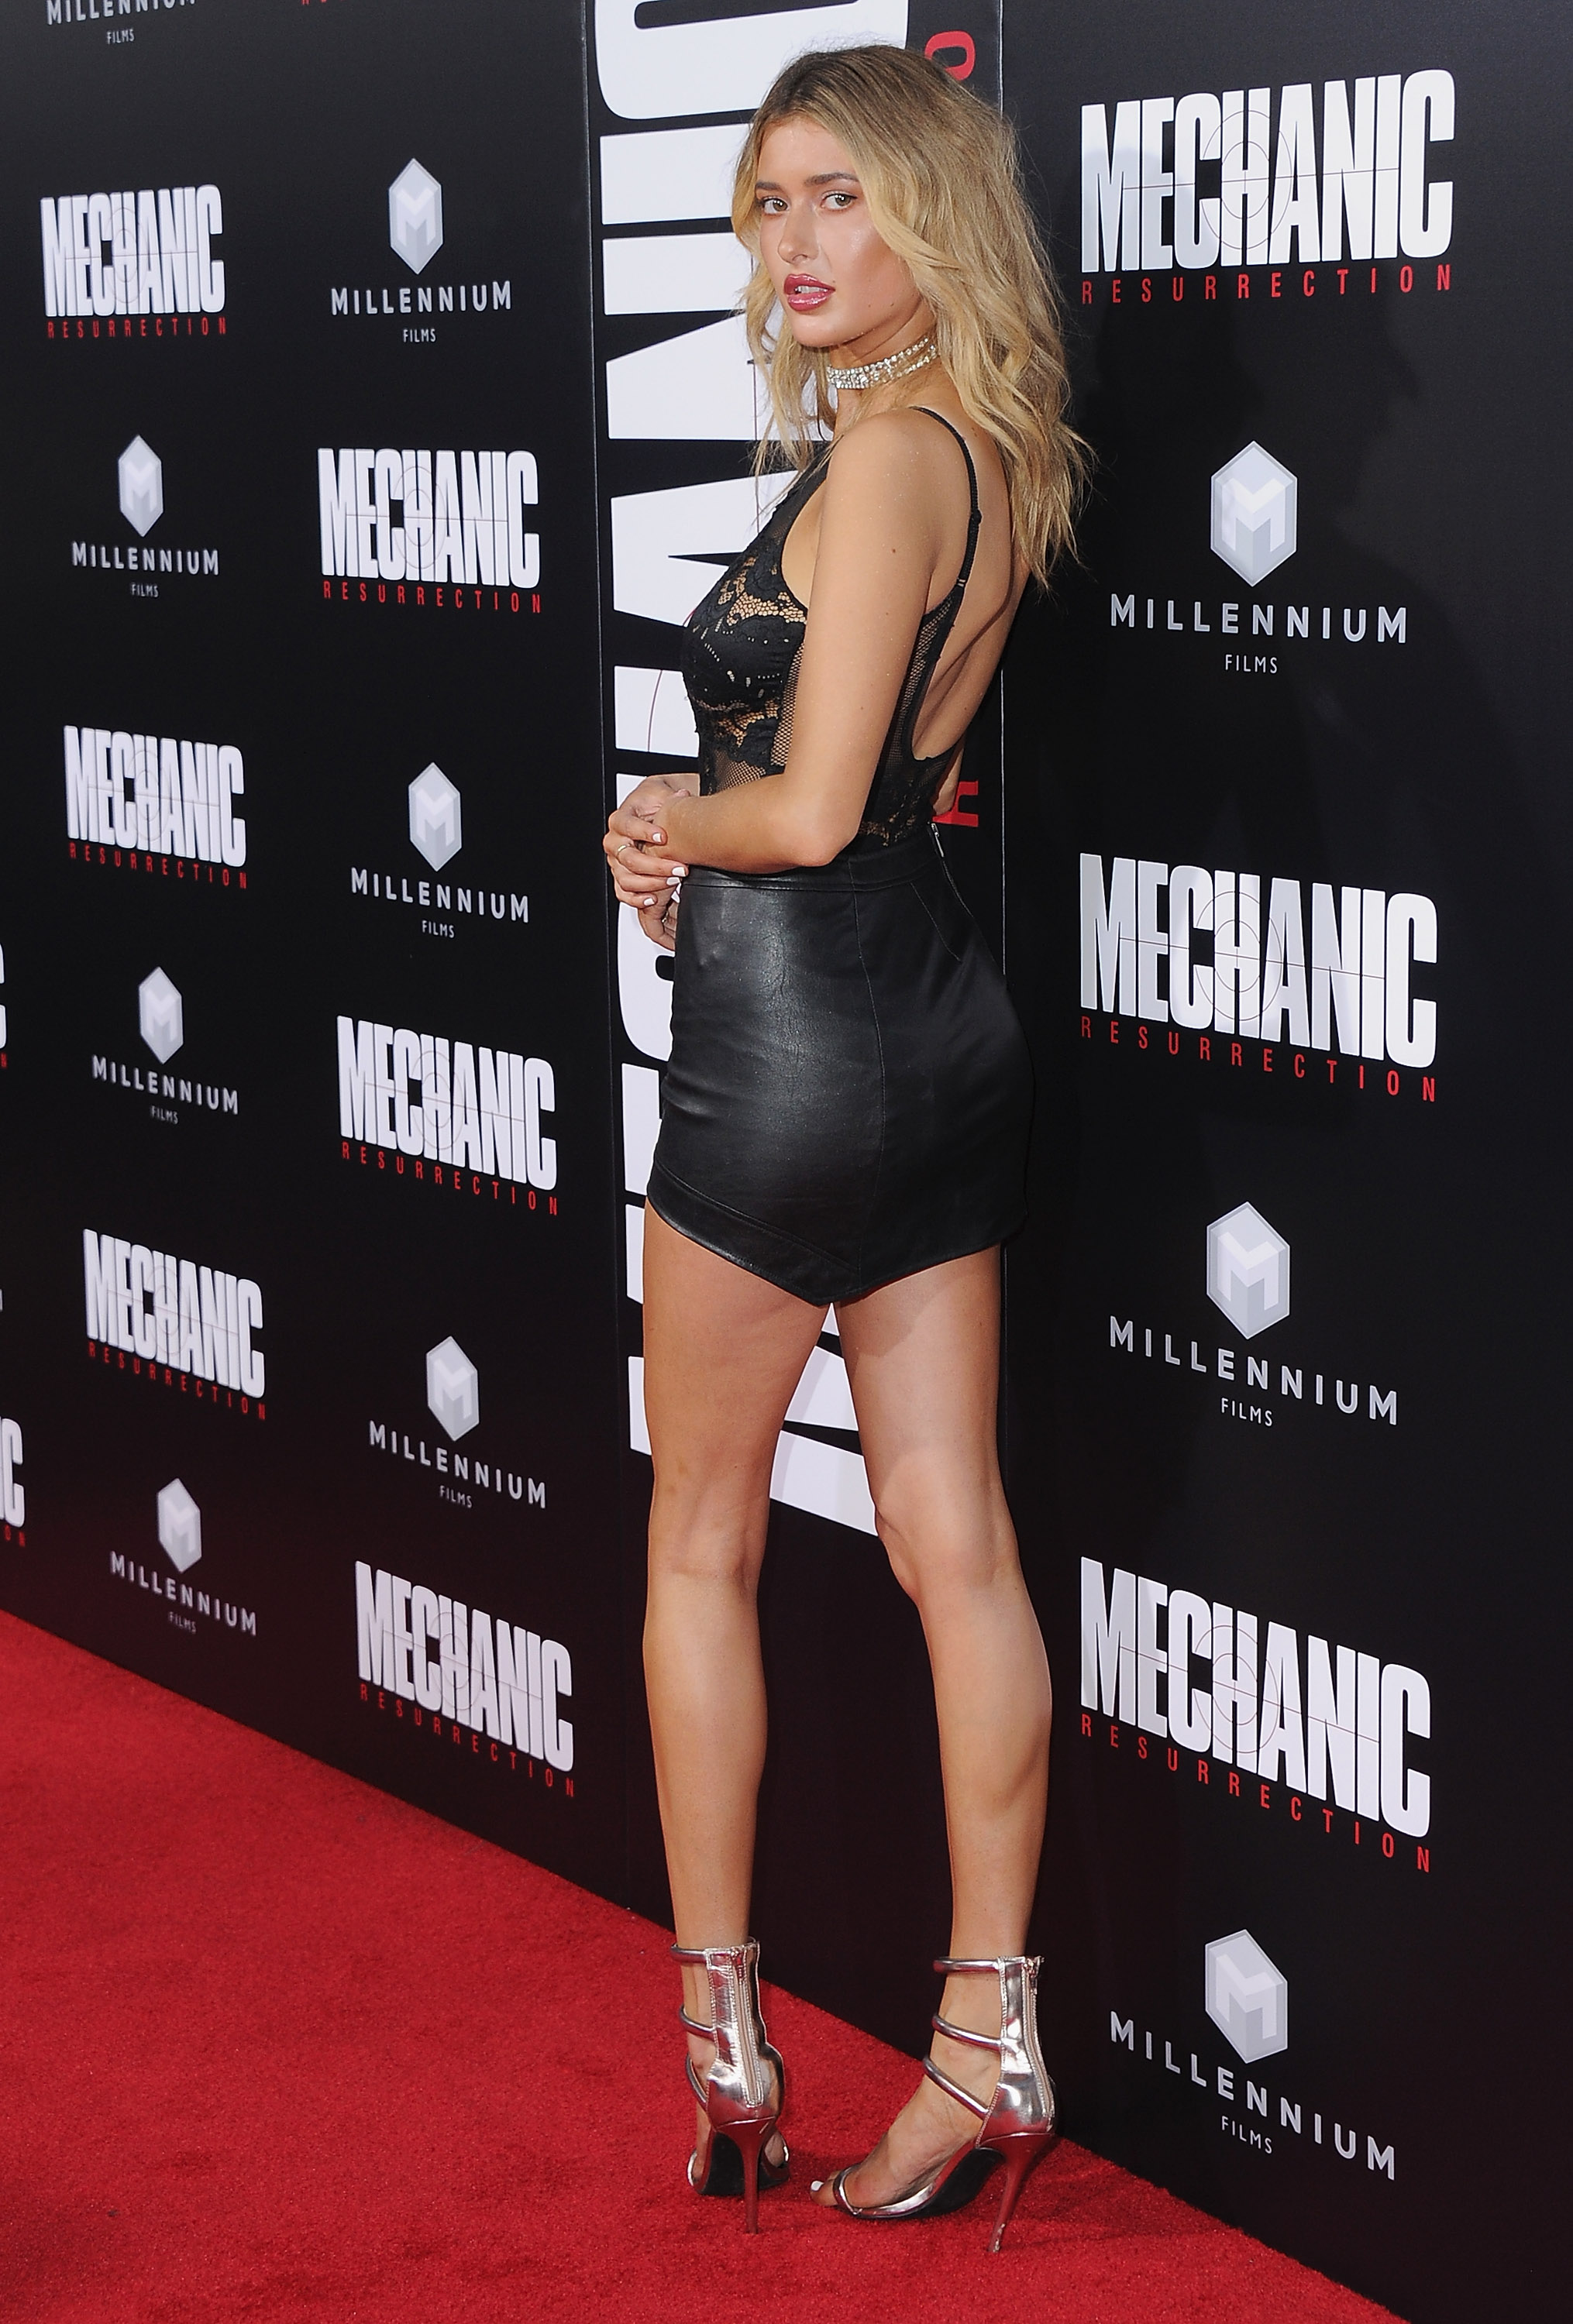 Gemma Vence attends Mechanic Resurrection premiere